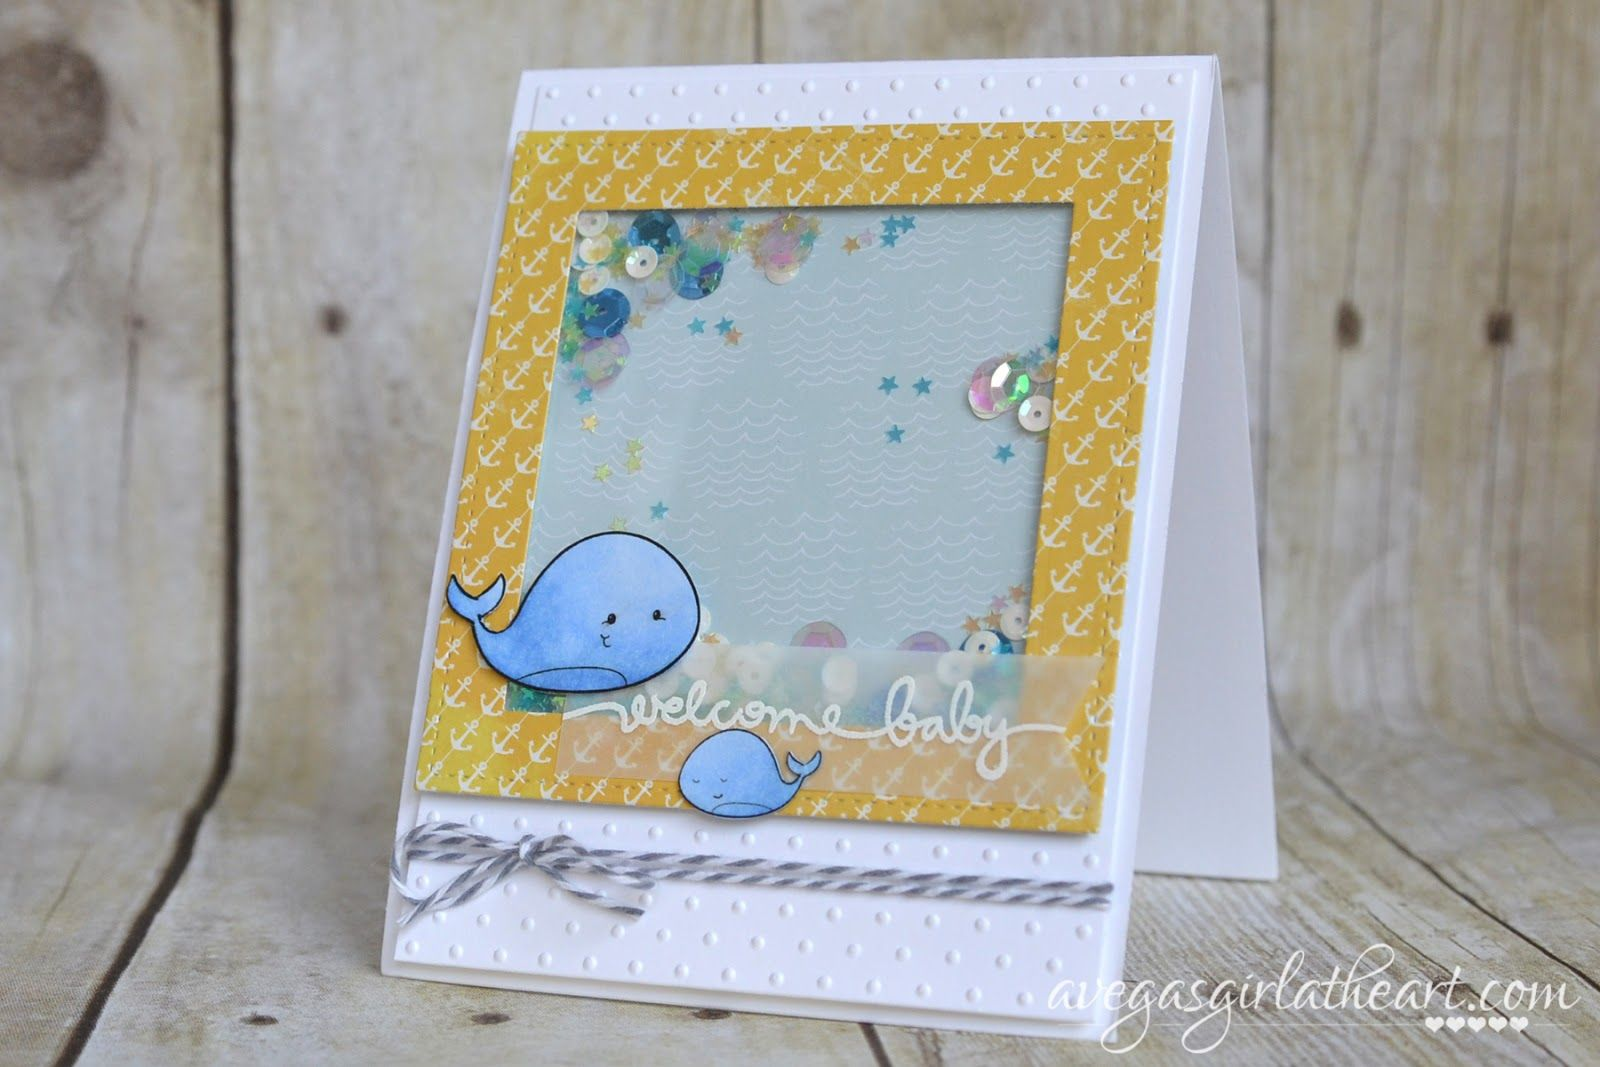 A Vegas Girl at Heart: Welcome Baby Card